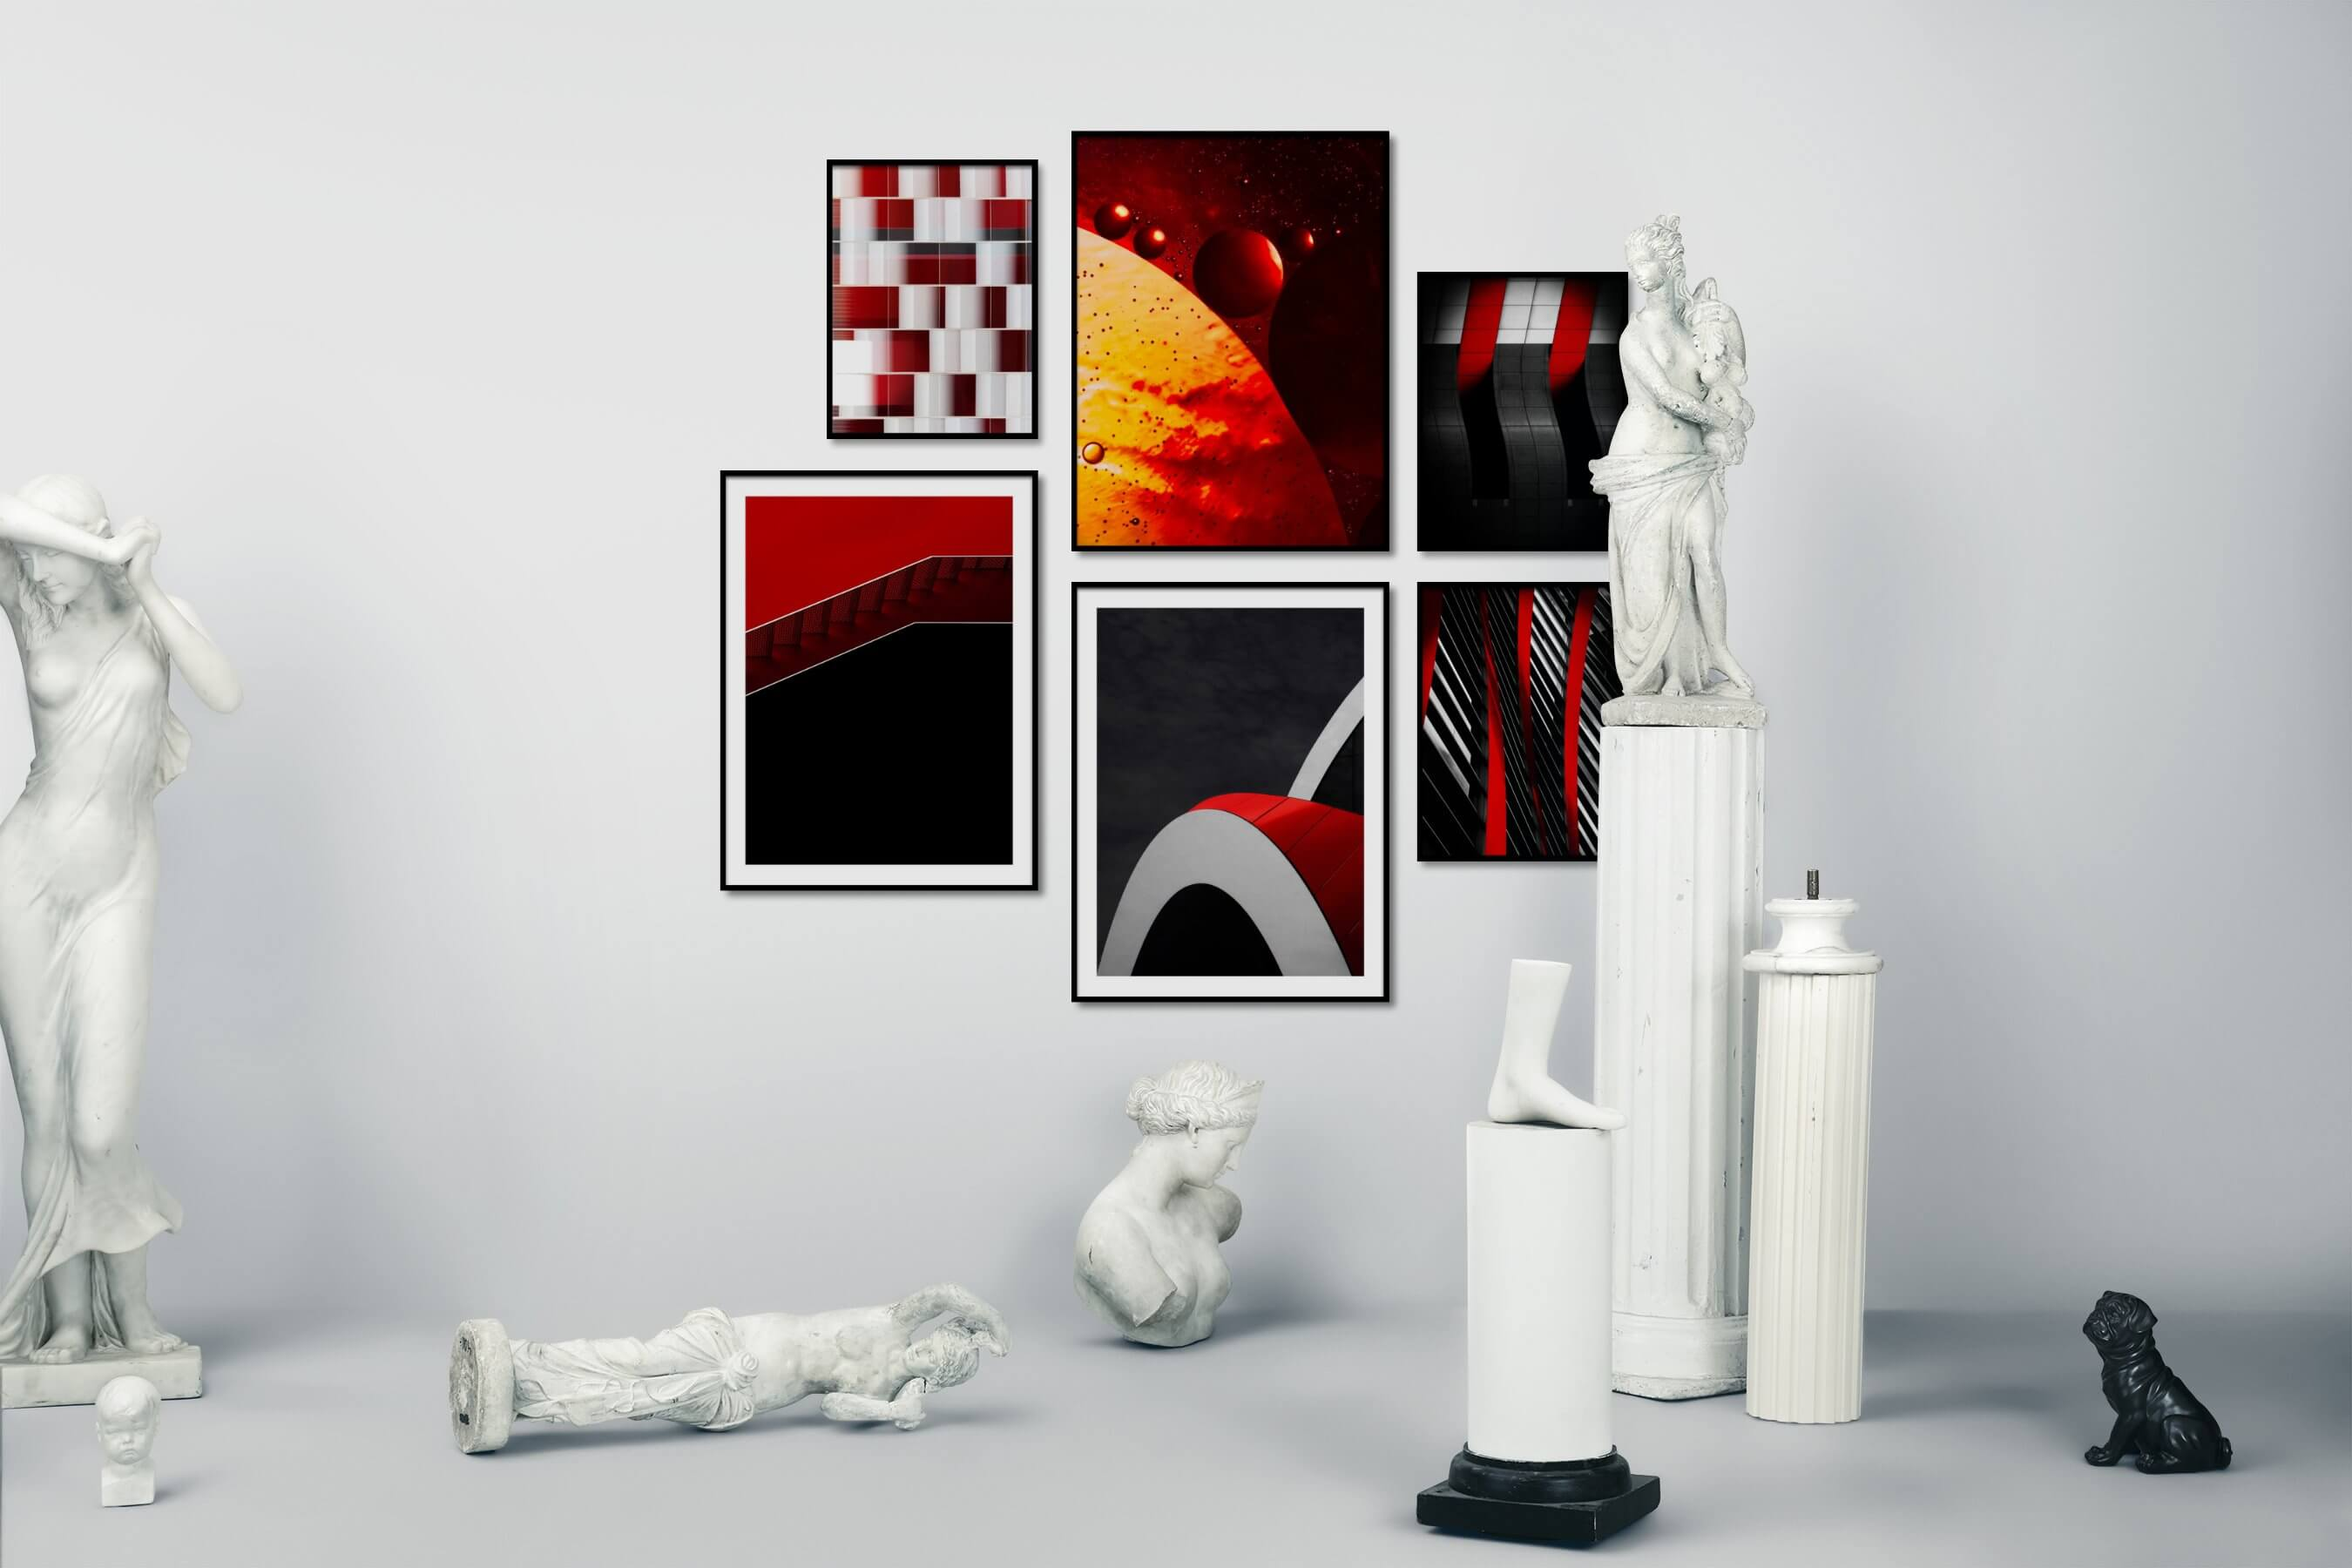 Gallery wall idea with six framed pictures arranged on a wall depicting For the Maximalist, Colorful, For the Minimalist, and For the Moderate